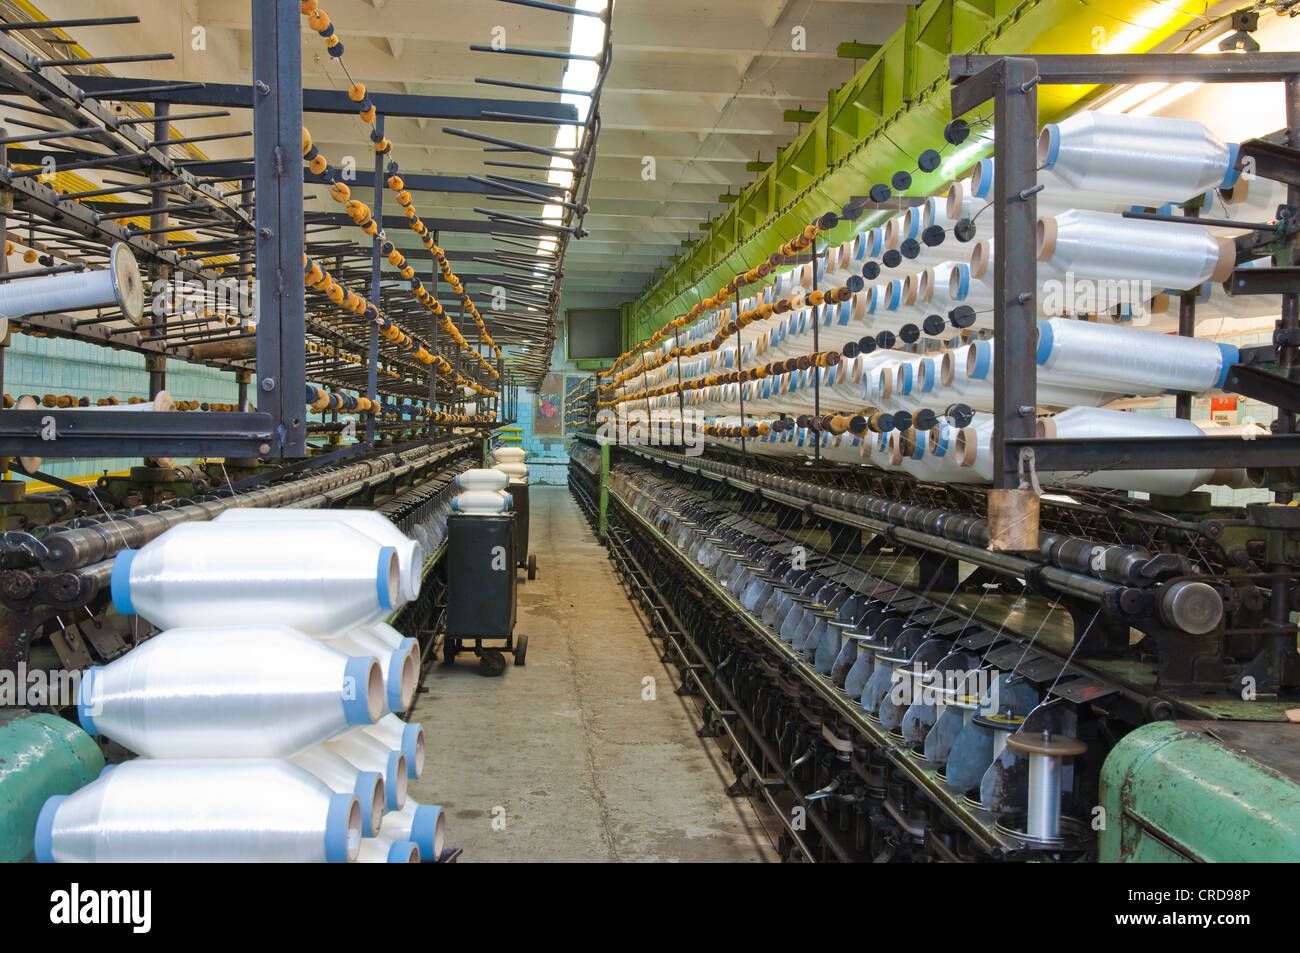 Textile factory equipment in the workshop and thread on large spools - Stock Image